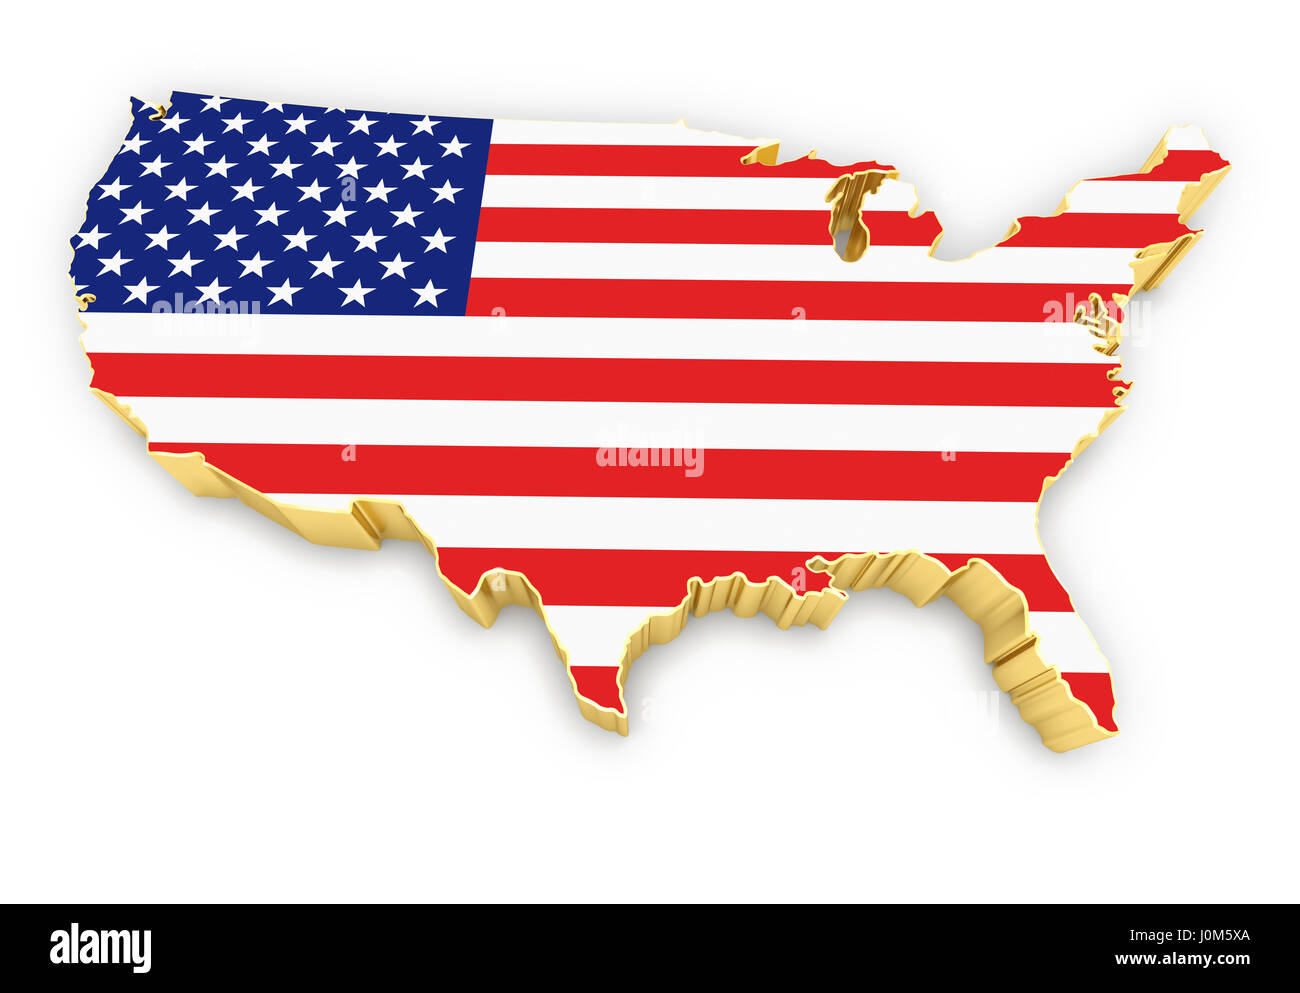 Refers to the sharpness and clarity of an image. United States Of America High Resolution Rendered Golden Map Stock Photo Alamy